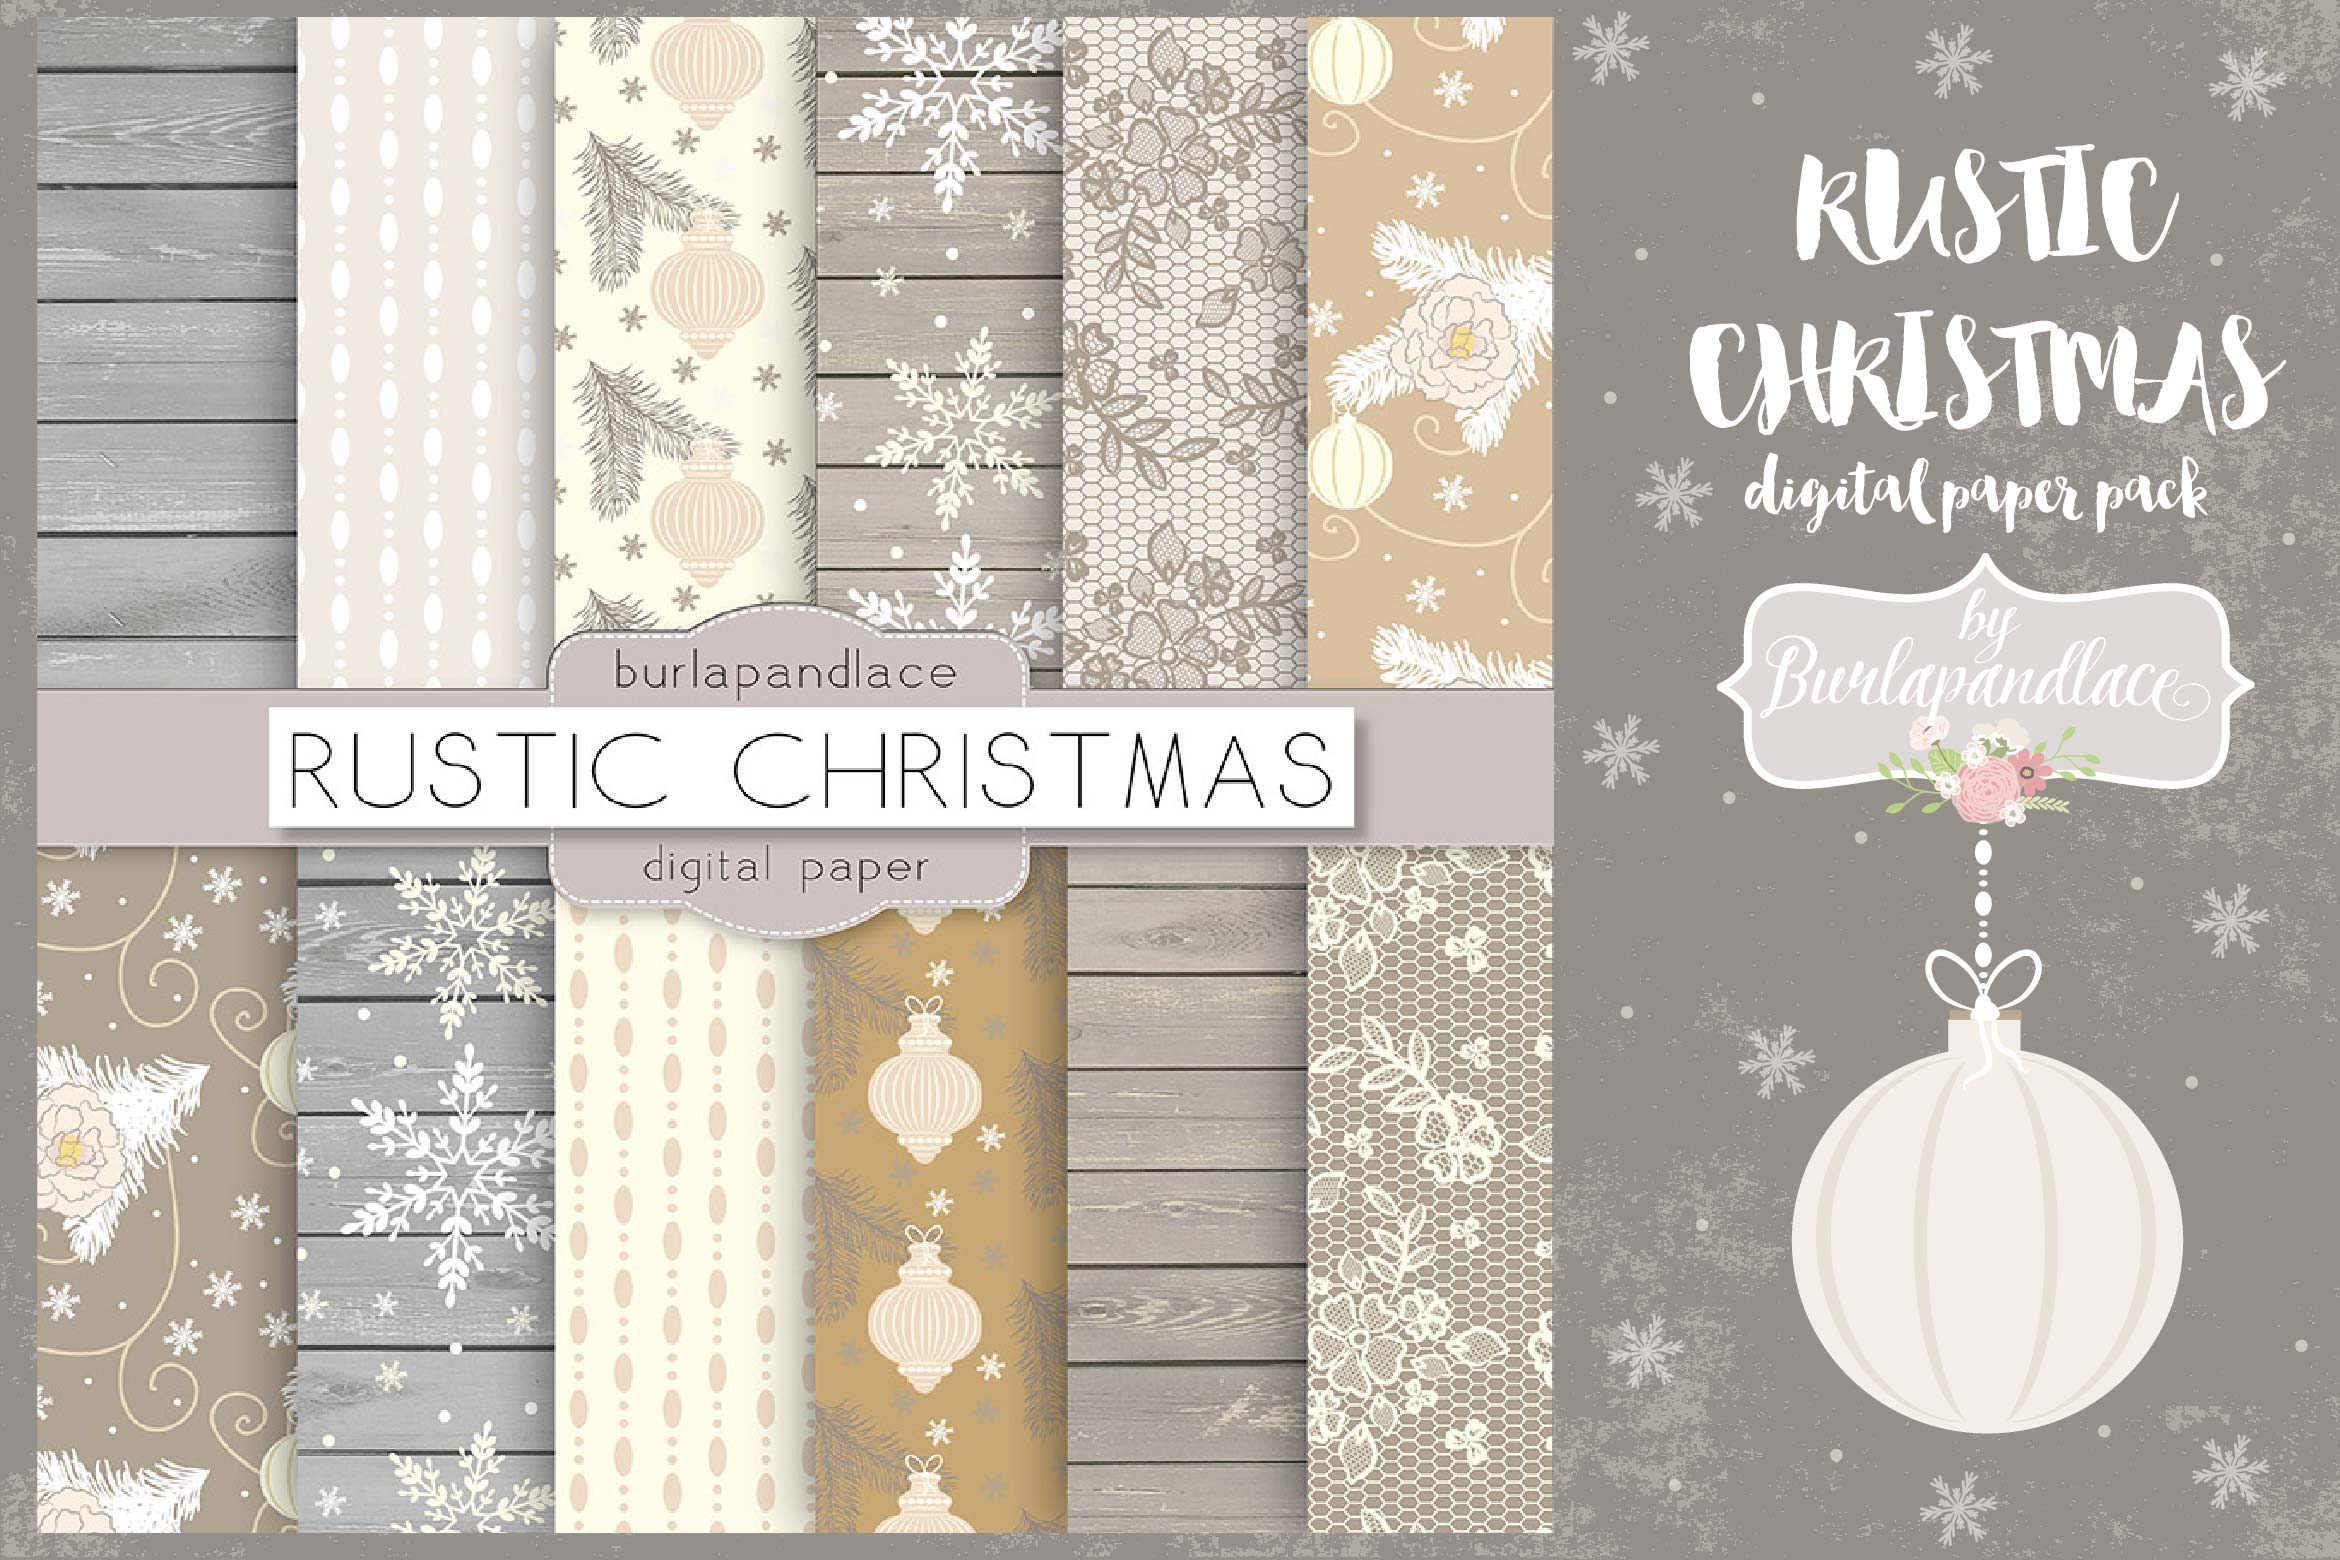 Vintage rustic floral christmas digital papers example image 1